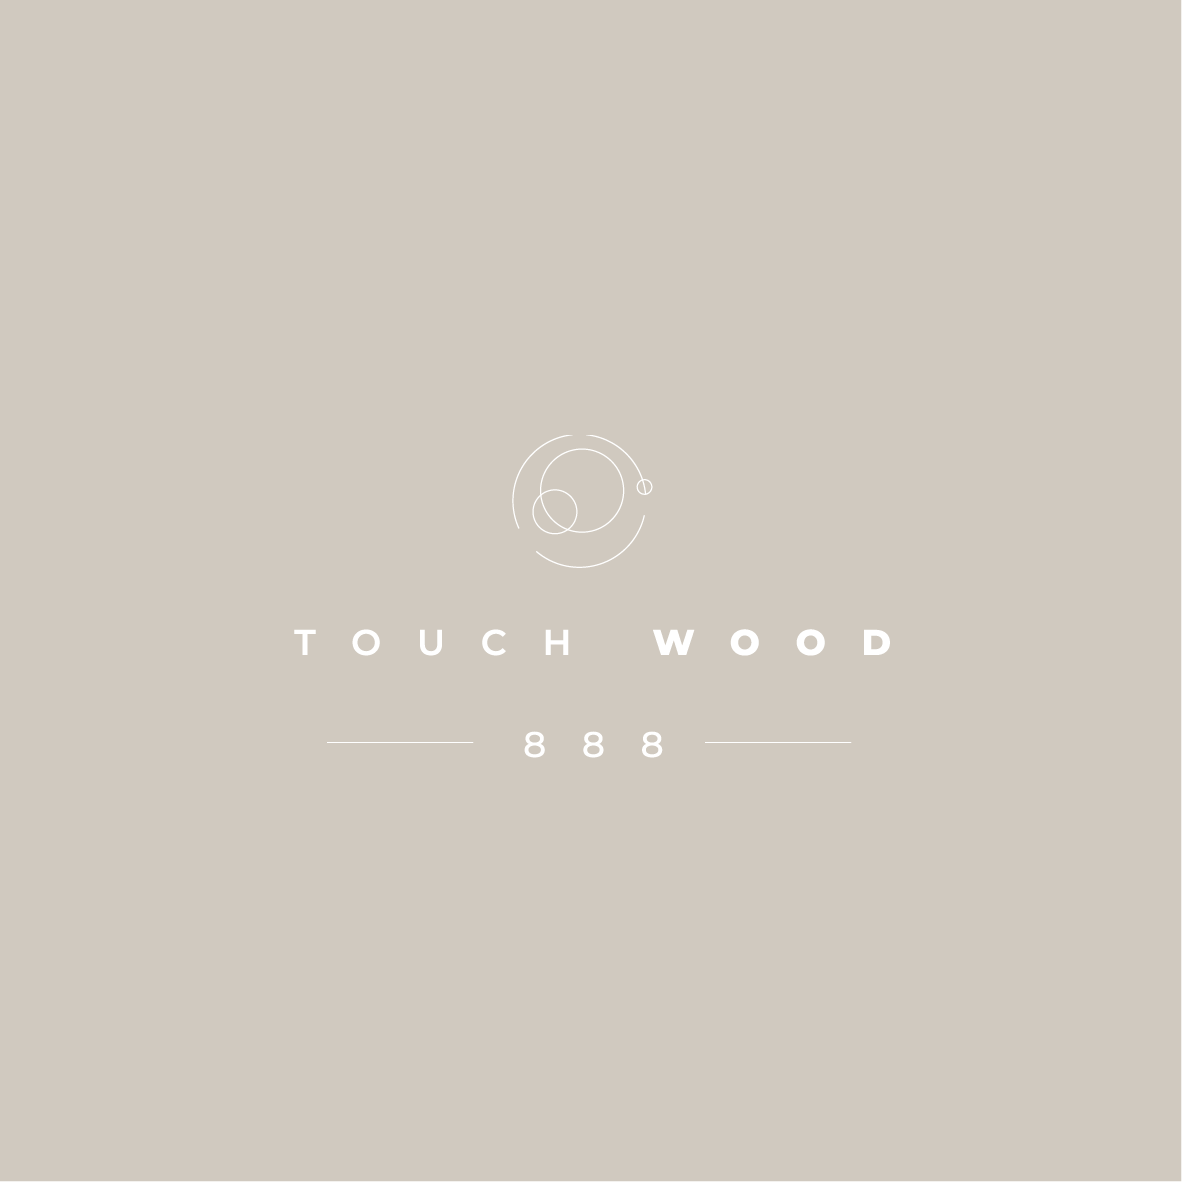 Touch Wood 888